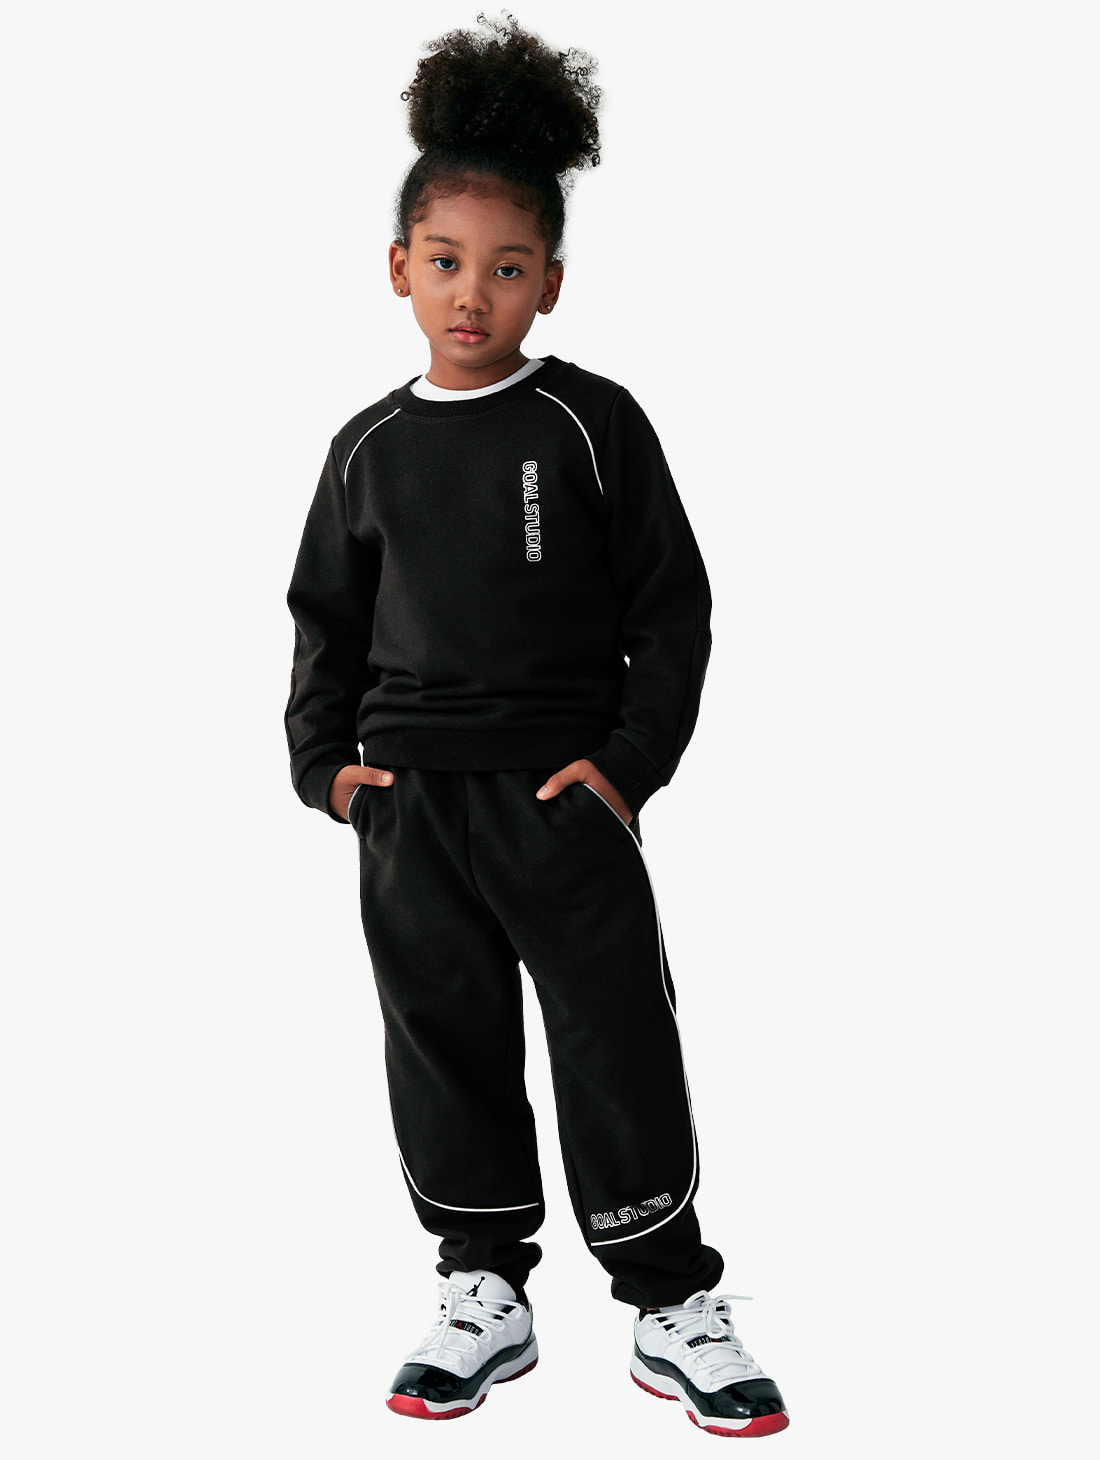 GOALSTUDIO [10% OFF] (KIDS) PIPING SWEATSHIRTS & JOGGER PANTS SET